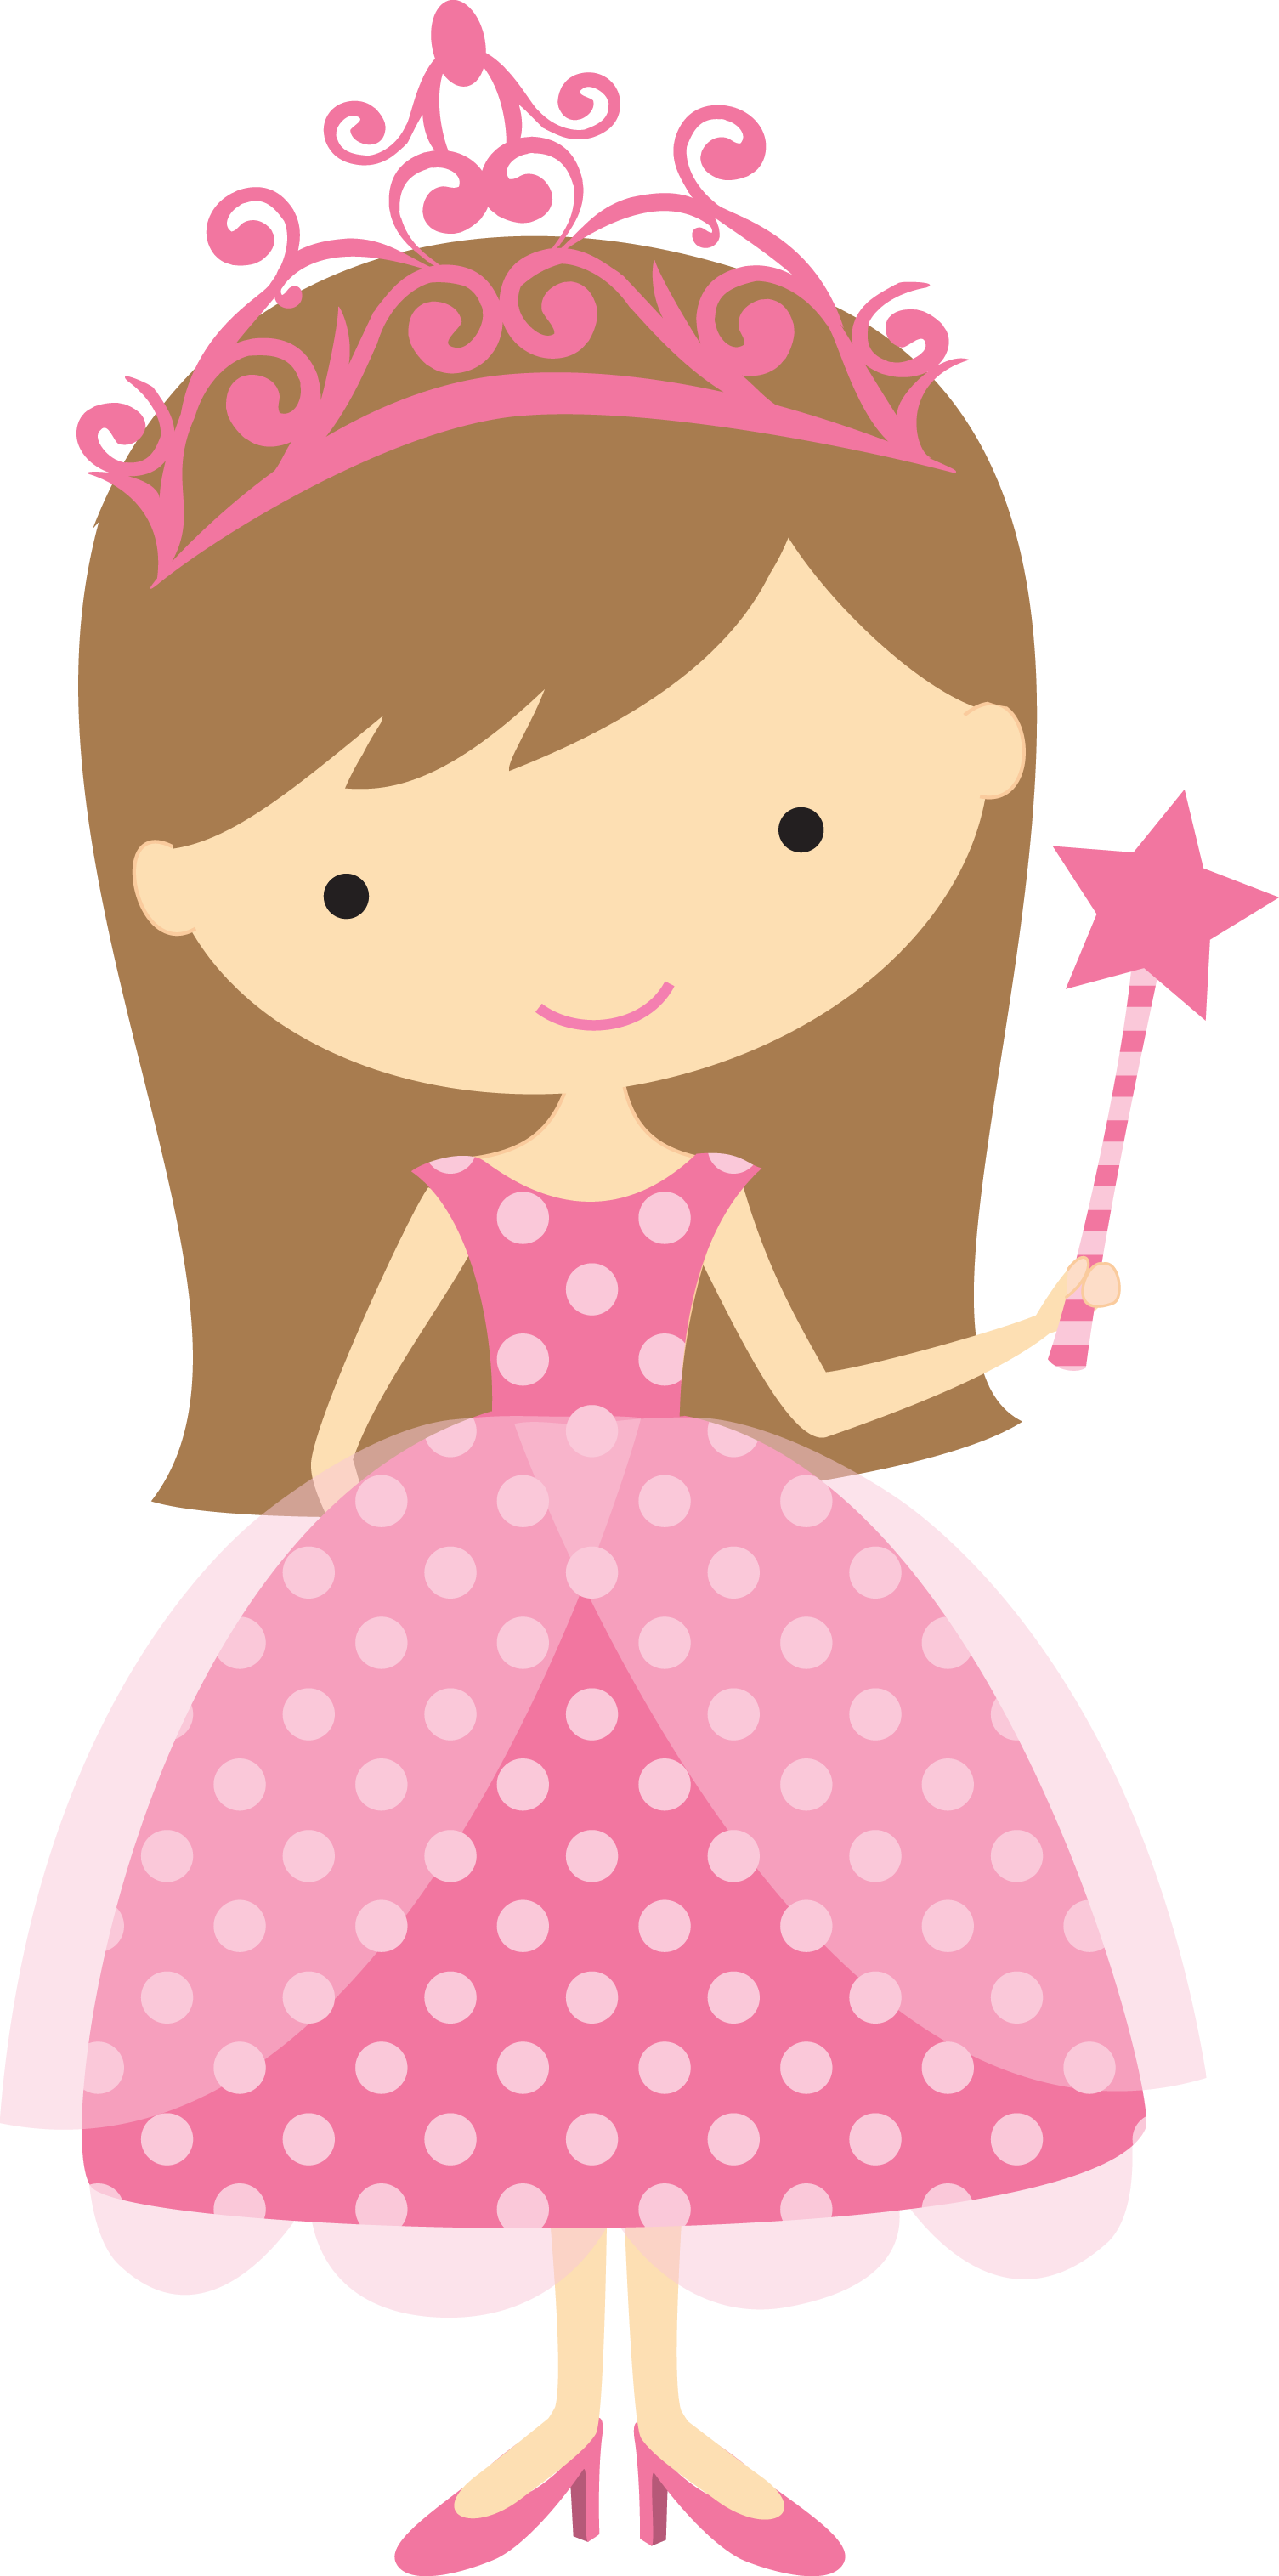 Princess clipart png. Pretty images